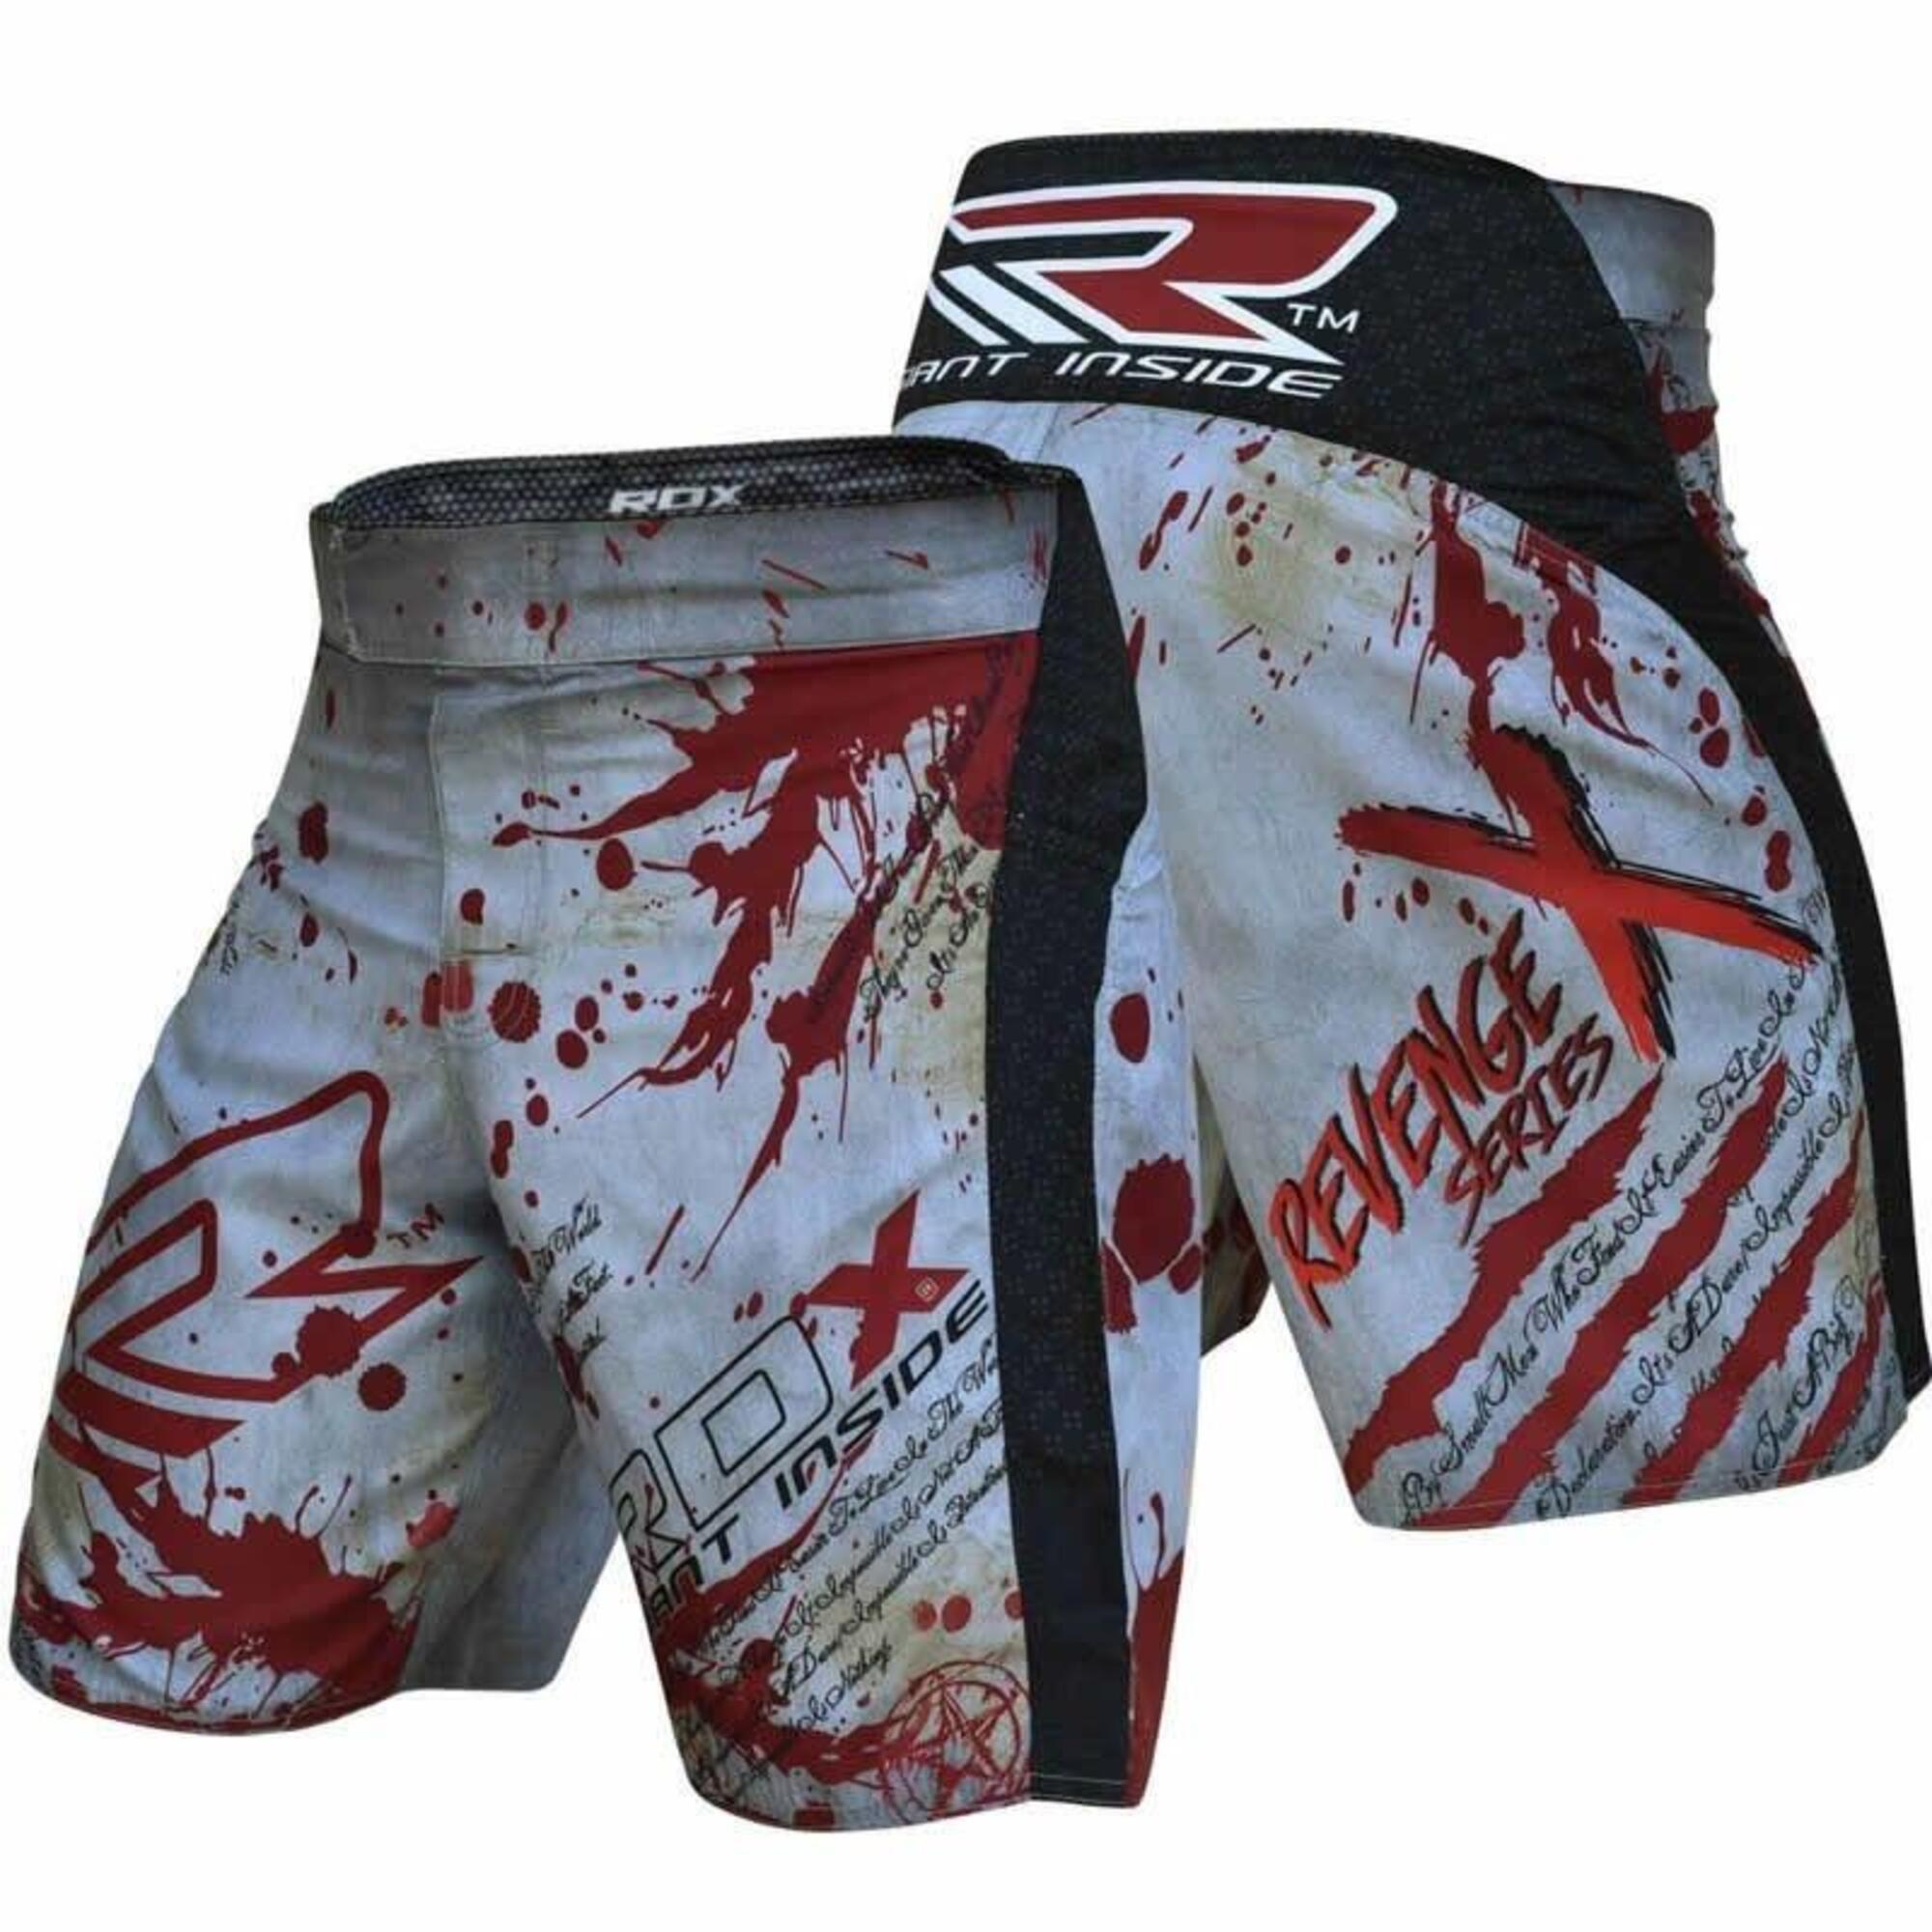 Sports R3 Revenge Series MMA Shorts - Maat 2XL